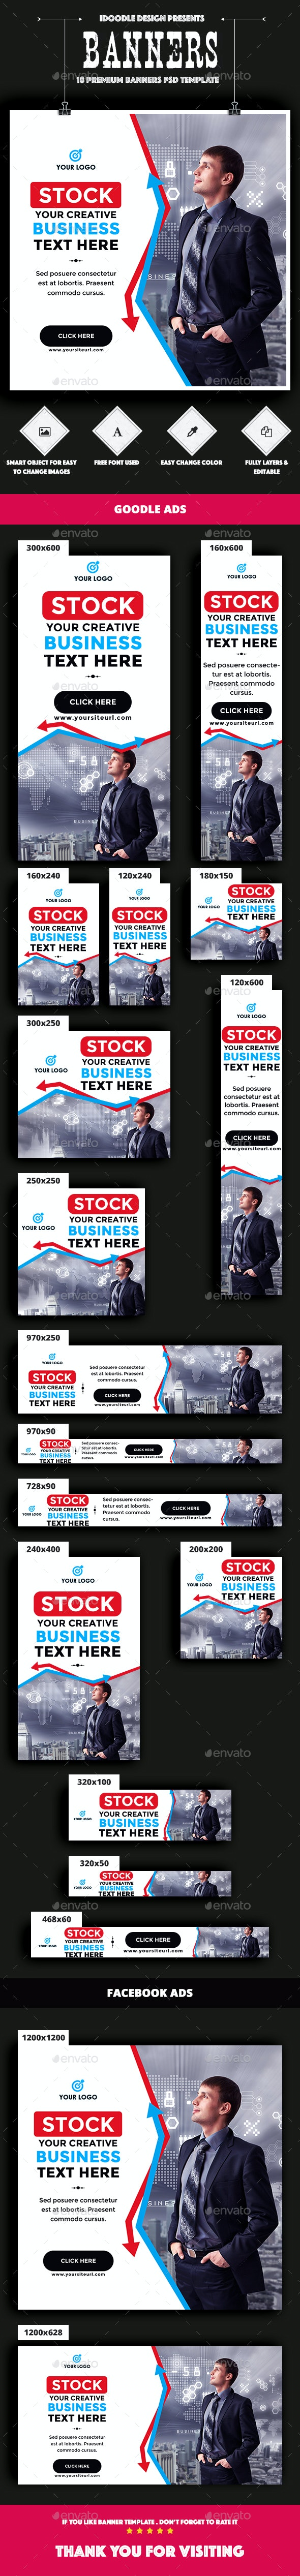 Business Banners Ads - Banners & Ads Web Elements